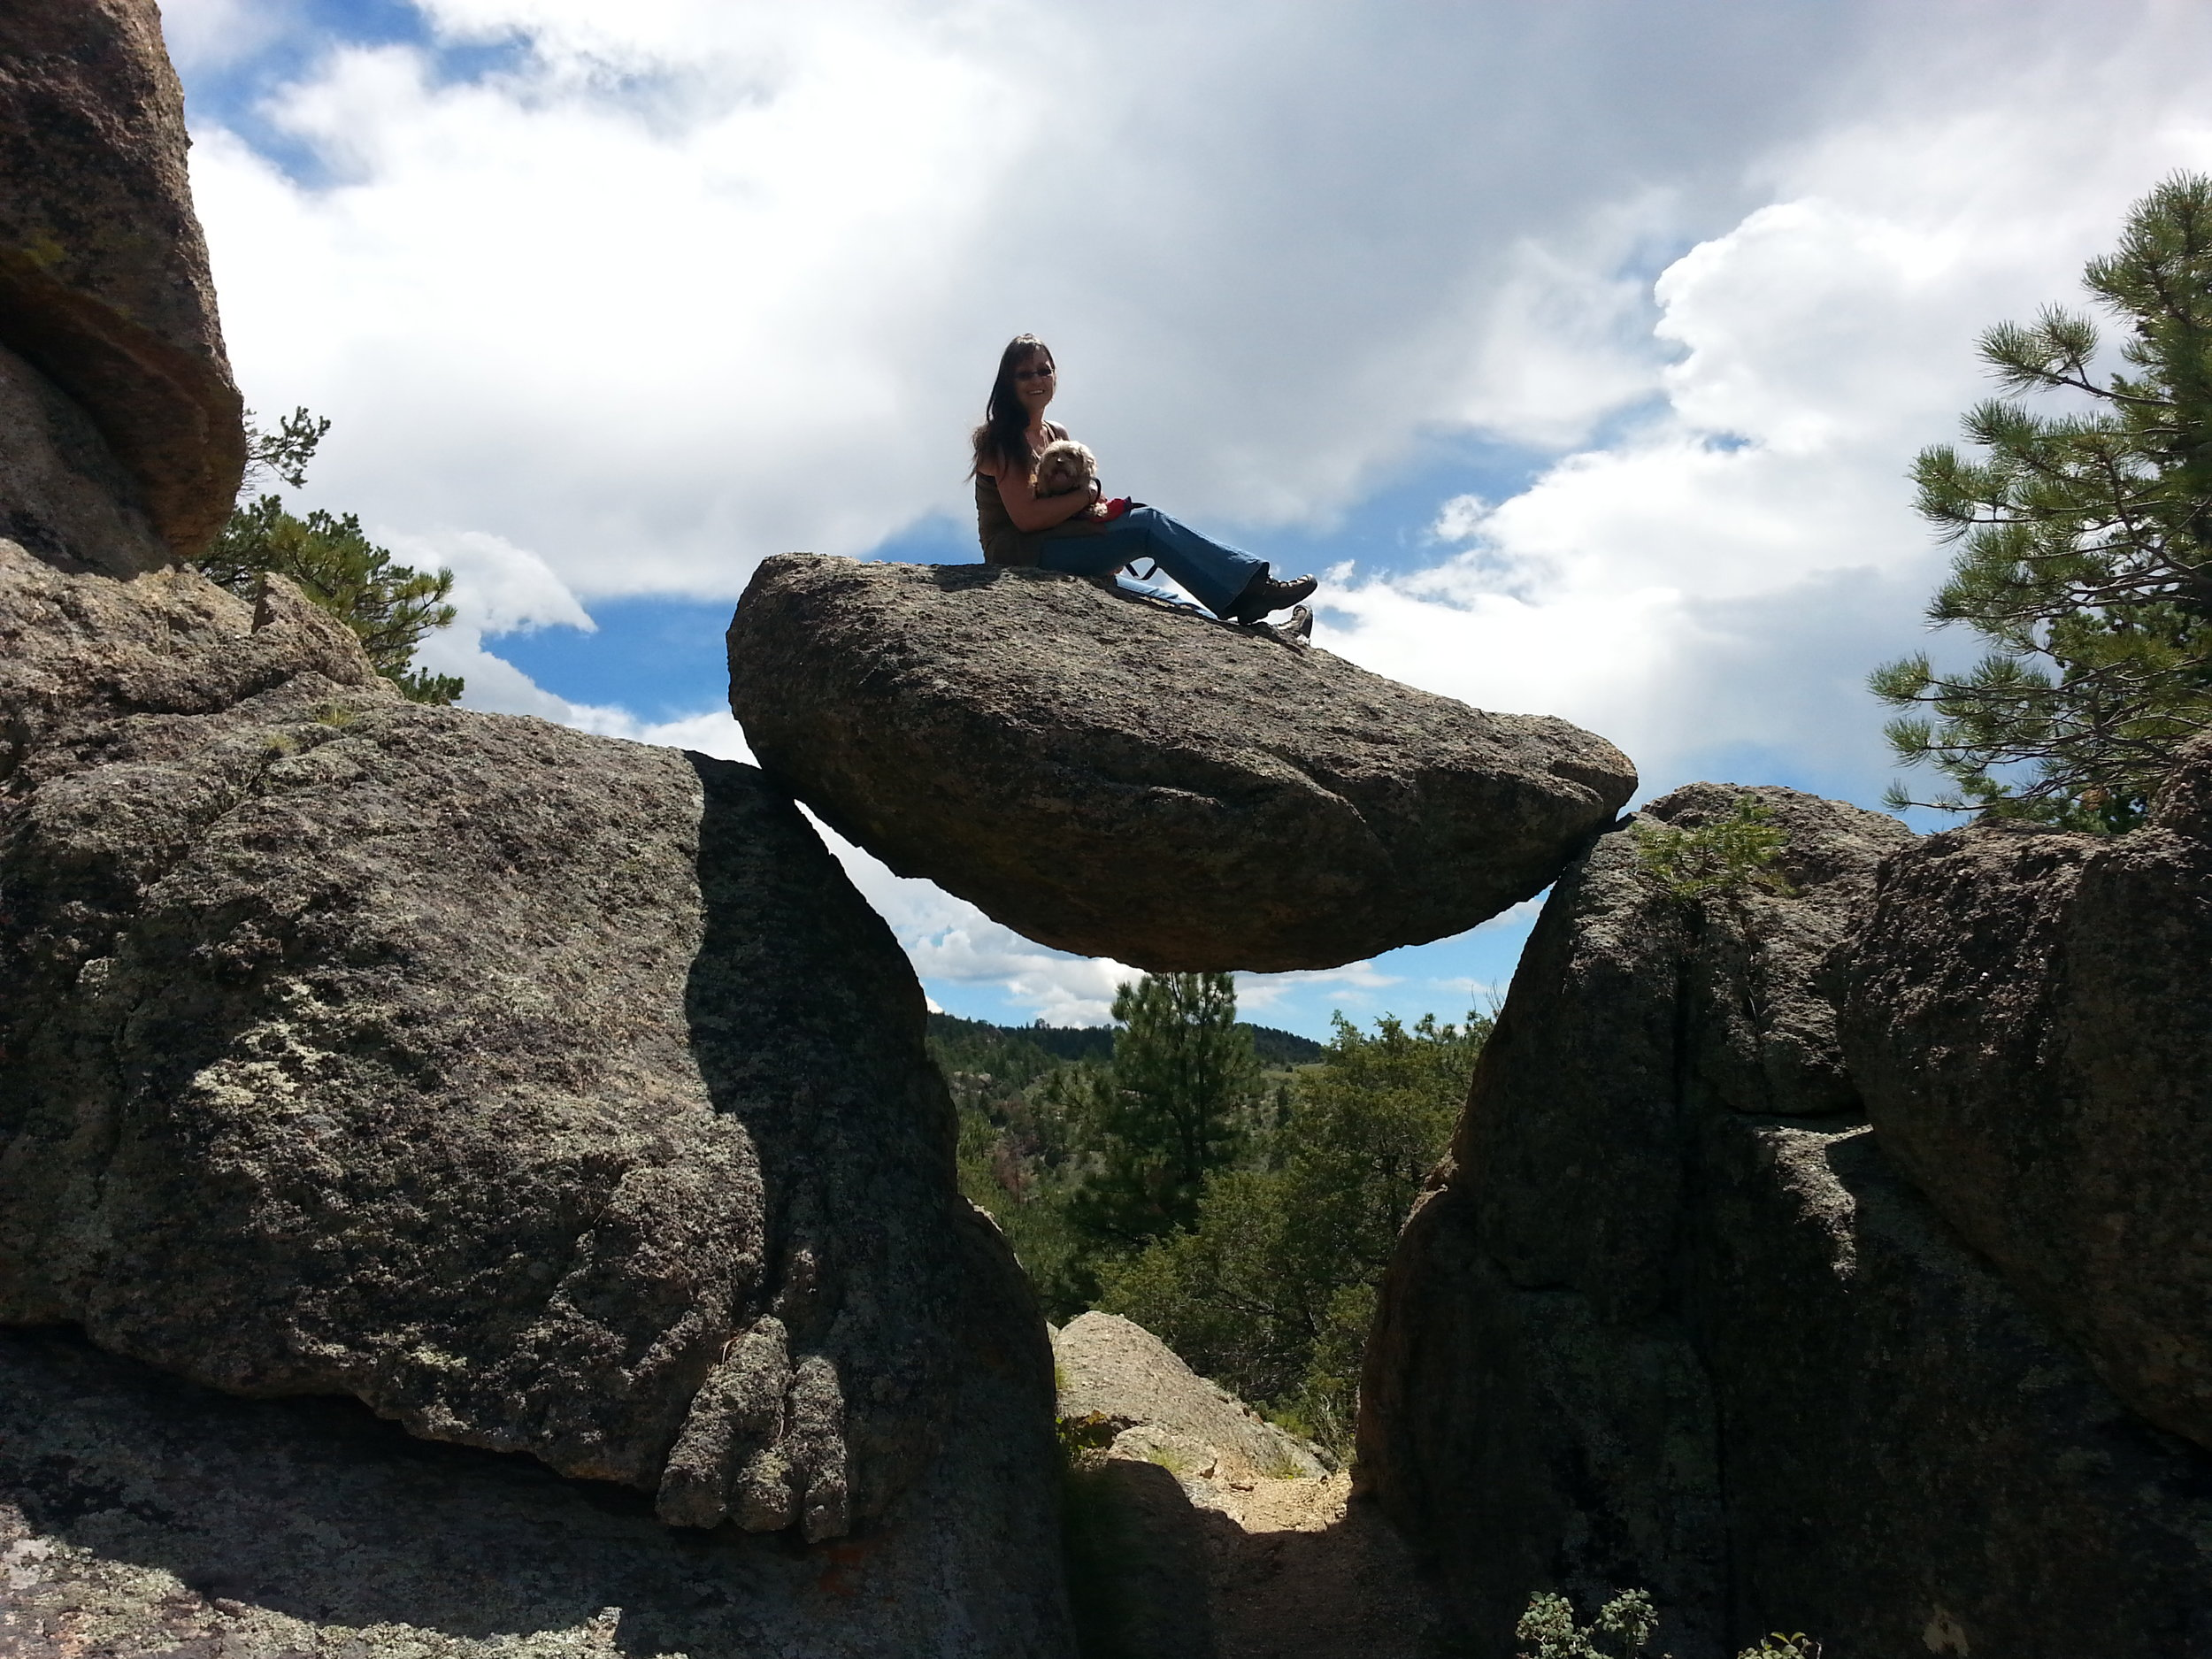 Always up for an adventure, Cindy & Snickle Fritz leave tracks on Swinging Rock in Turret, Colorado.